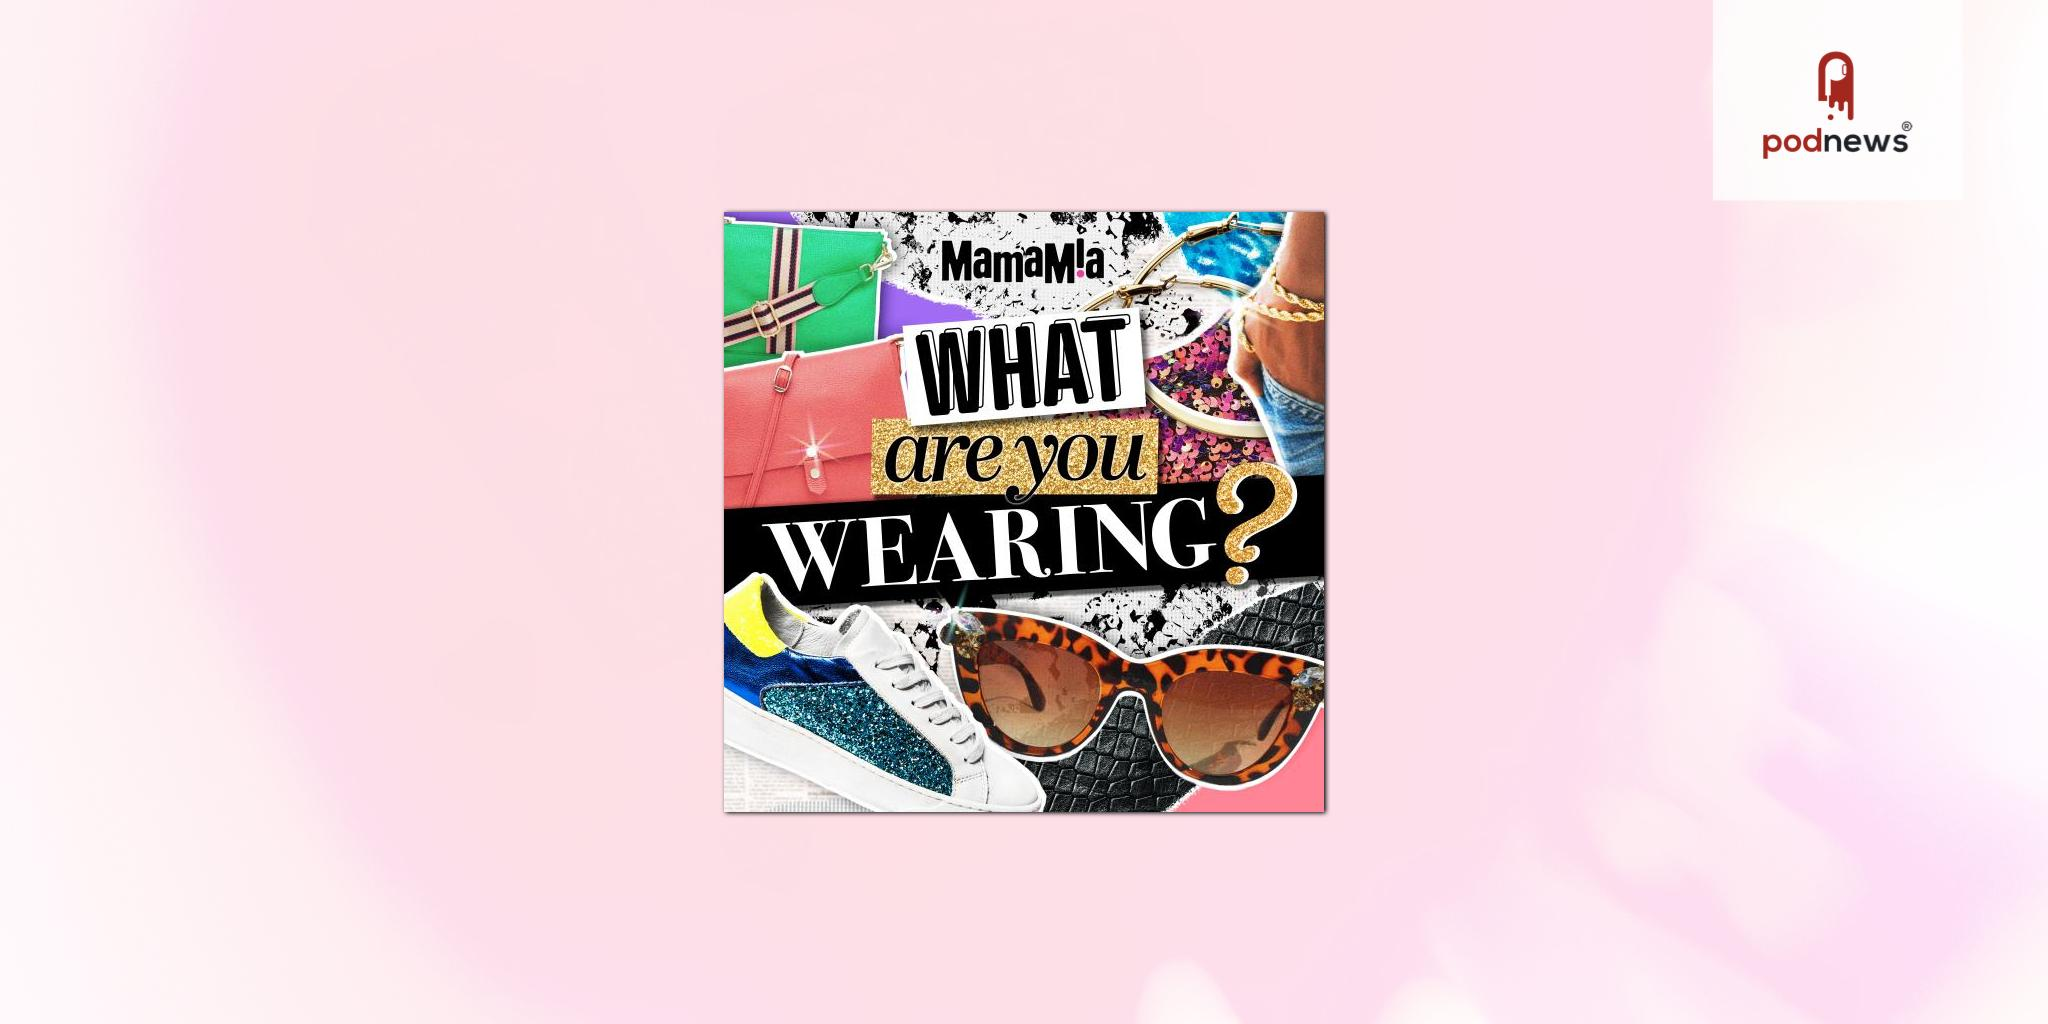 Mamamia's new fashion podcast 'What Are You Wearing?' launches with H&M